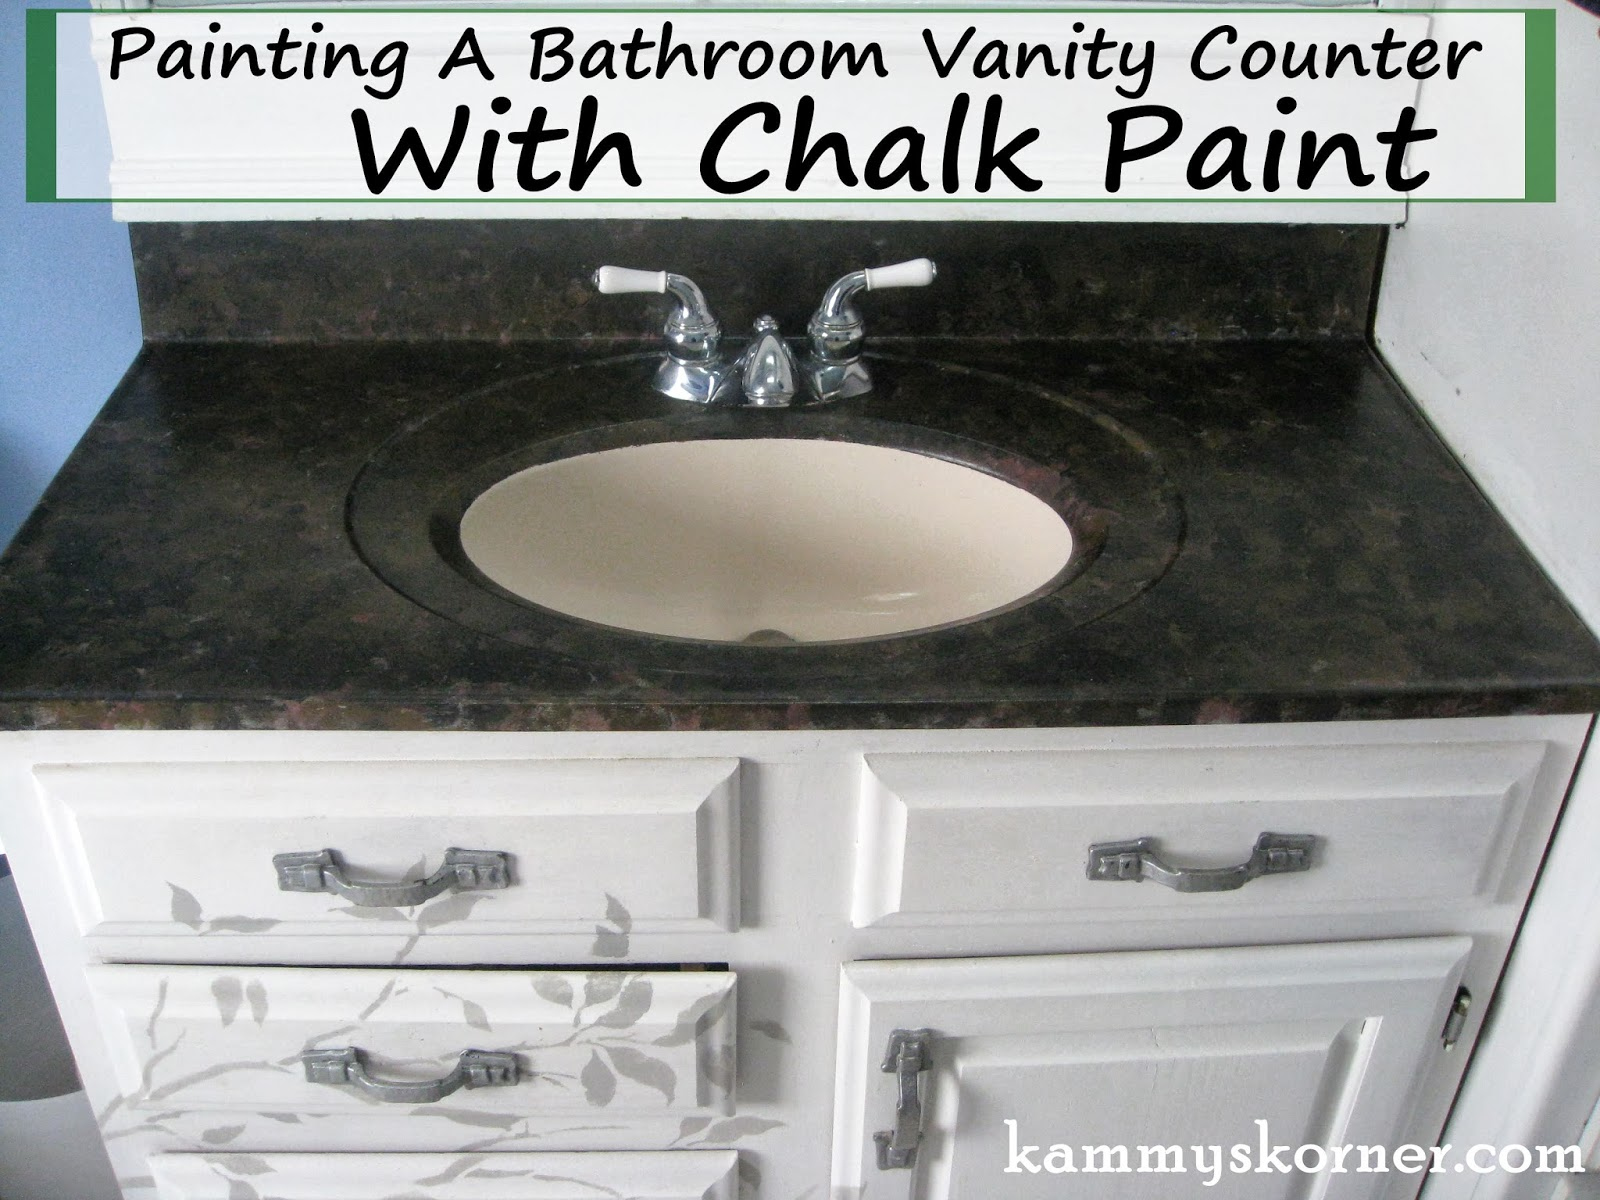 How to paint bathroom countertops - Painting A Porcelain Vanity Countertop New And Improved